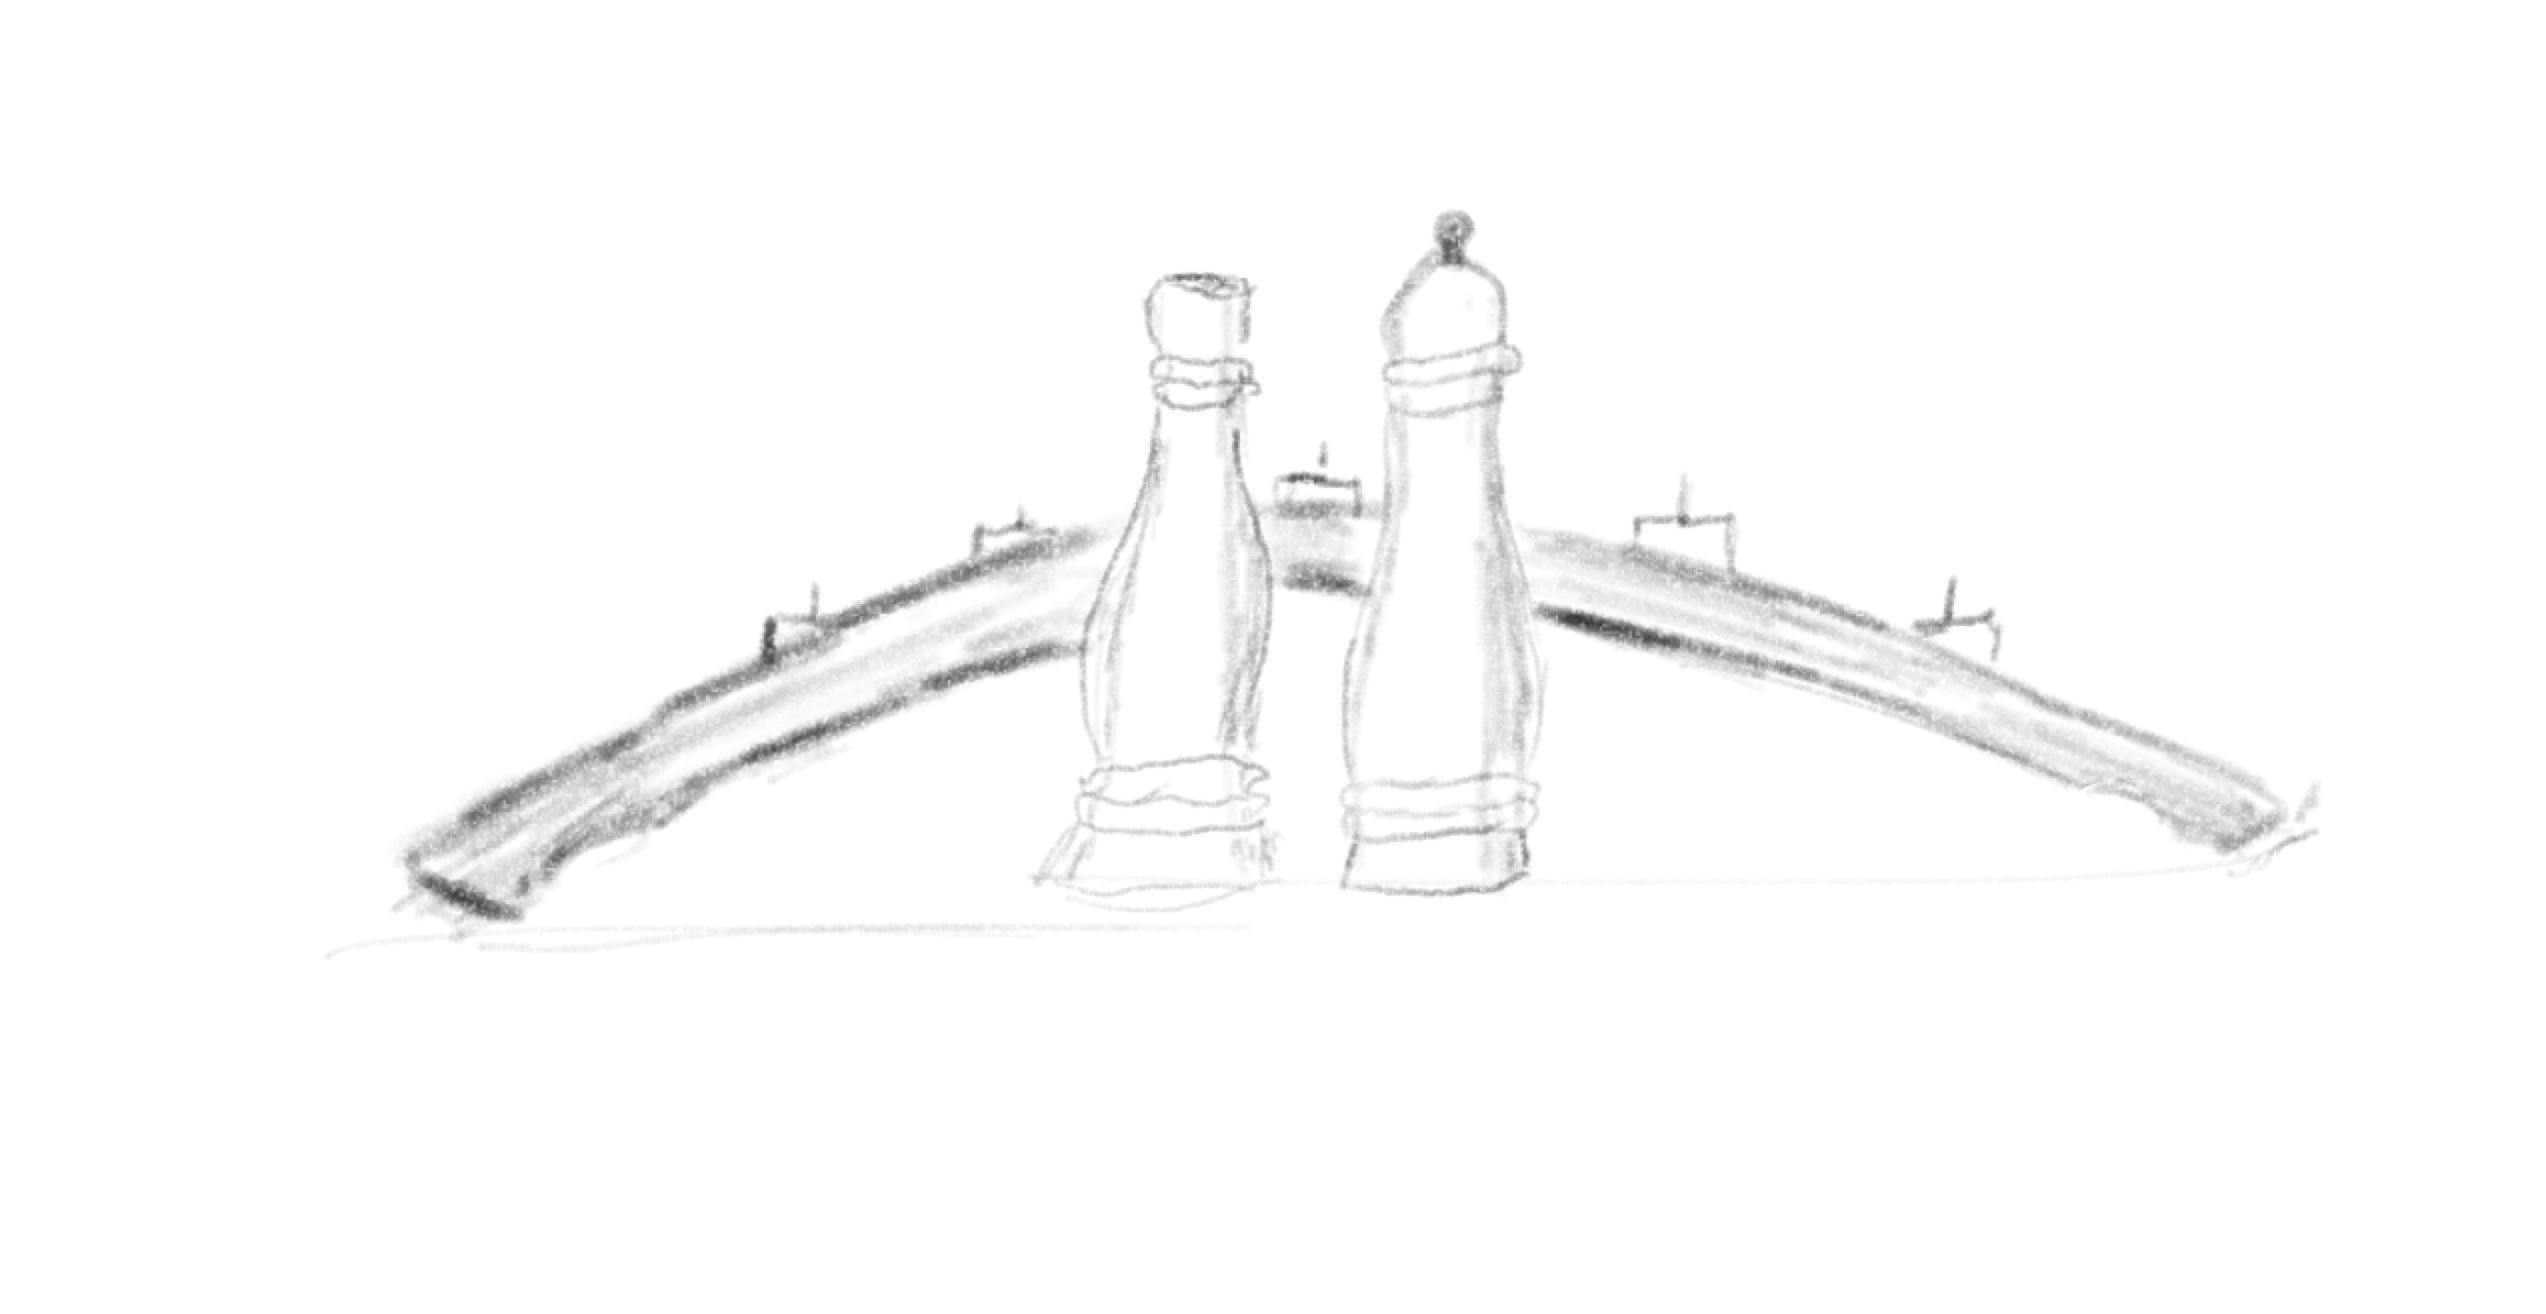 Sketch of salt and pepper grinders, sitting in front of an arched candle holder.